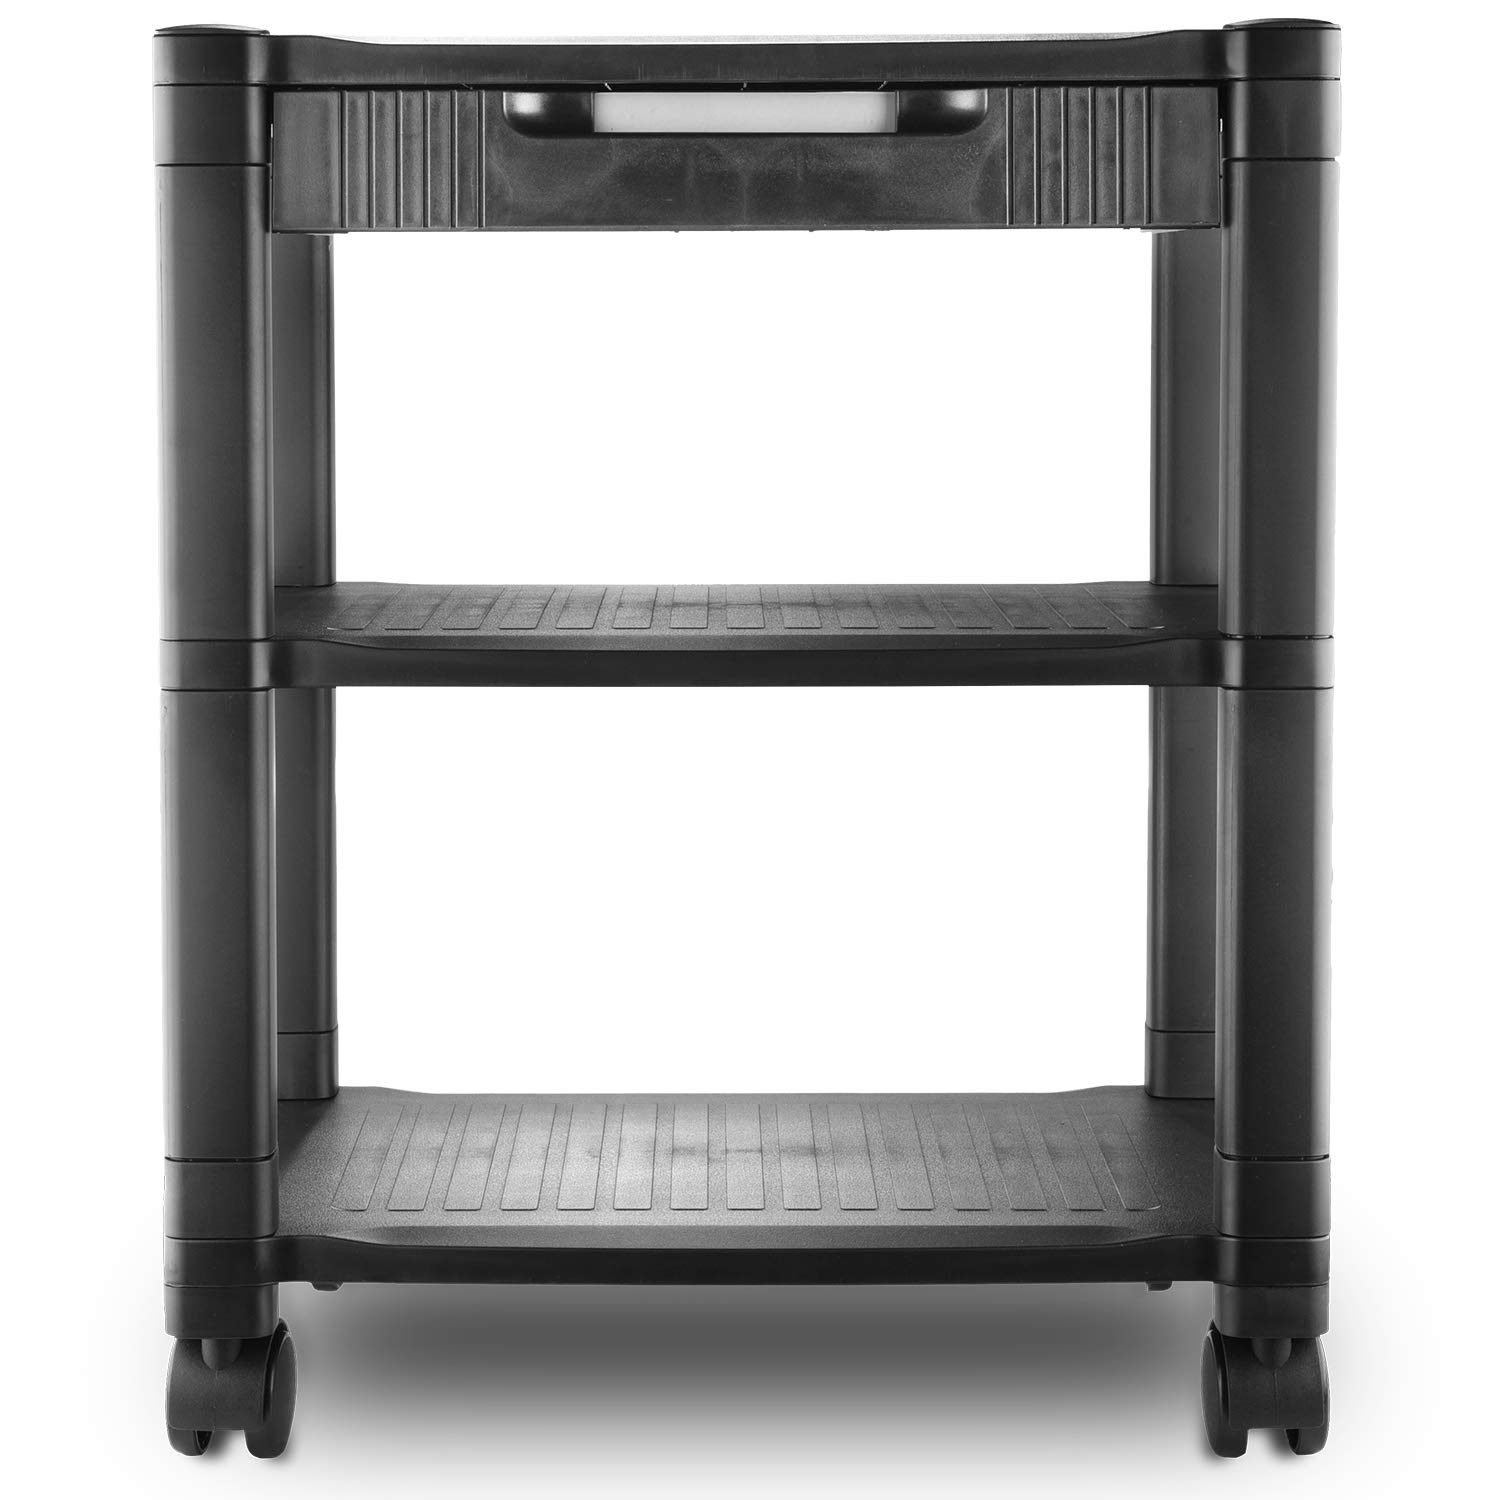 Circuit City PS3T 3 Shelf Wheeled Rolling Printer Cart Machine Stand with Built-in Storage and Cable Management - Holds Up to 75 Pounds (Black) by Circuit City